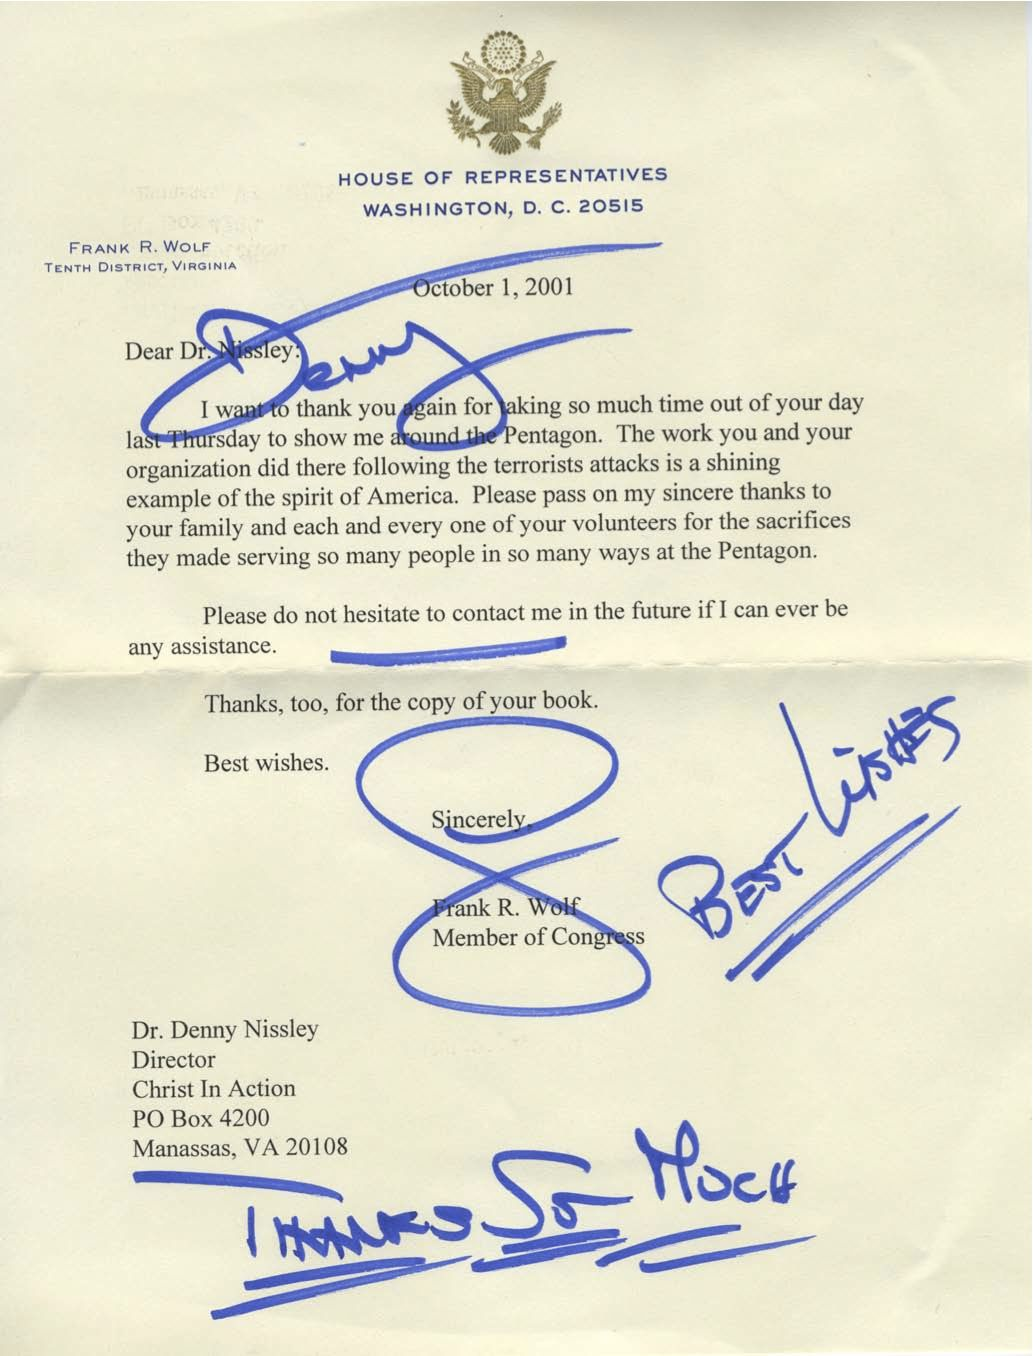 Bringing hope to americas families christ in action letter from congressman frank r wolf 01 oct 2001 altavistaventures Images